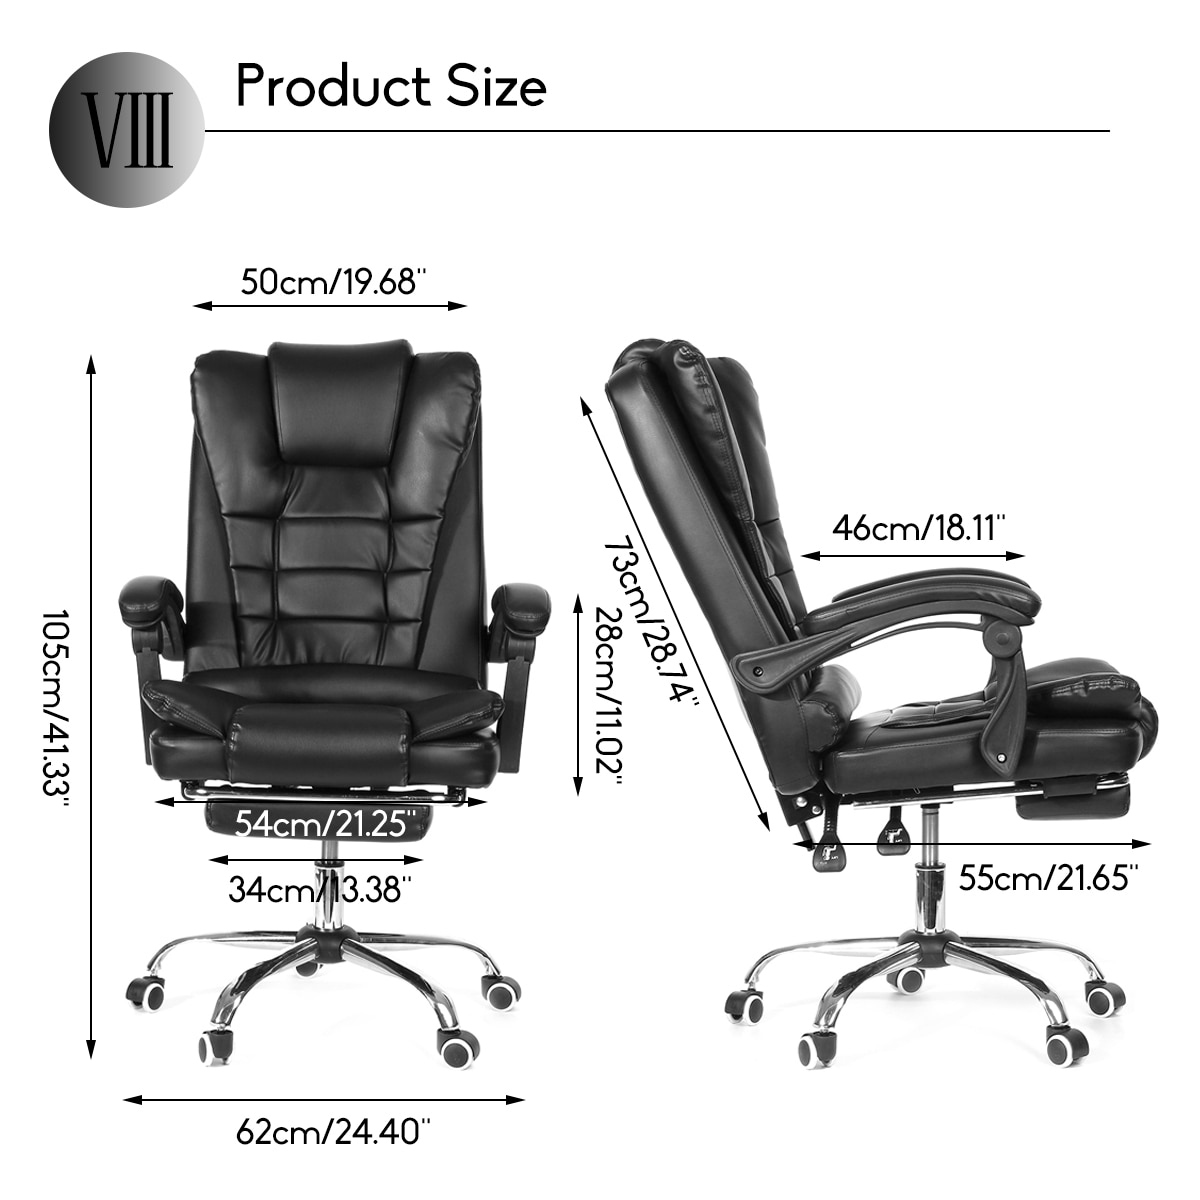 H18279f79b3c14e28a207eaf41b0f376cv - WCG Gaming Chair Computer Armchair Office Chairs Home Swivel Massage Chair Lifting Adjustable Desk Chair Lying Recliner Chair